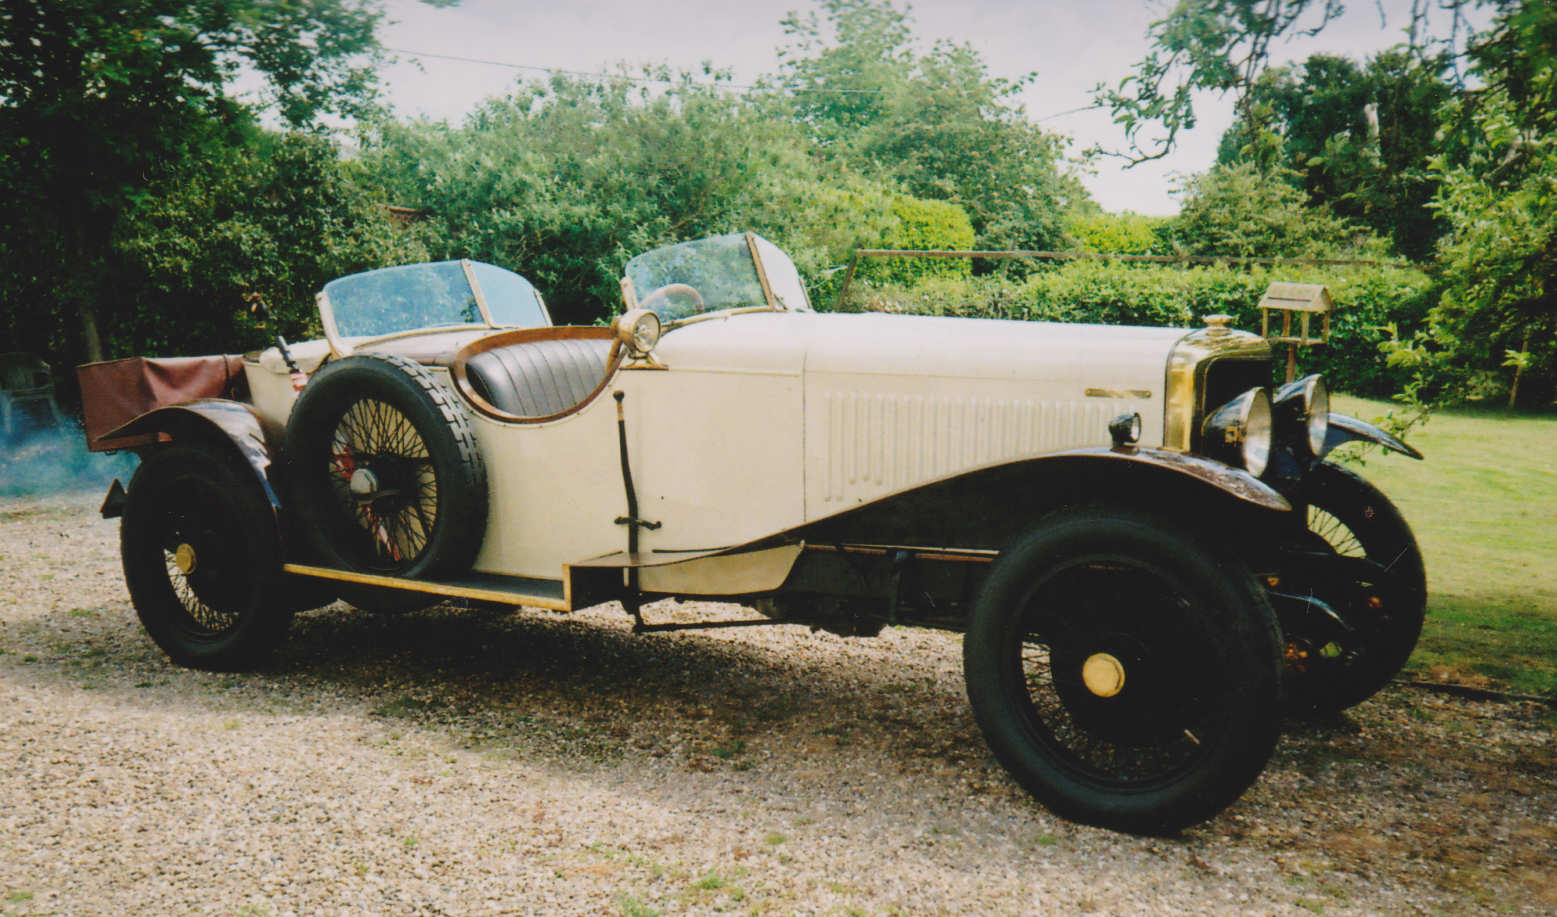 1924 Panhard Levassor 6.3 litres Straight 8. For Sale (picture 2 of 6)